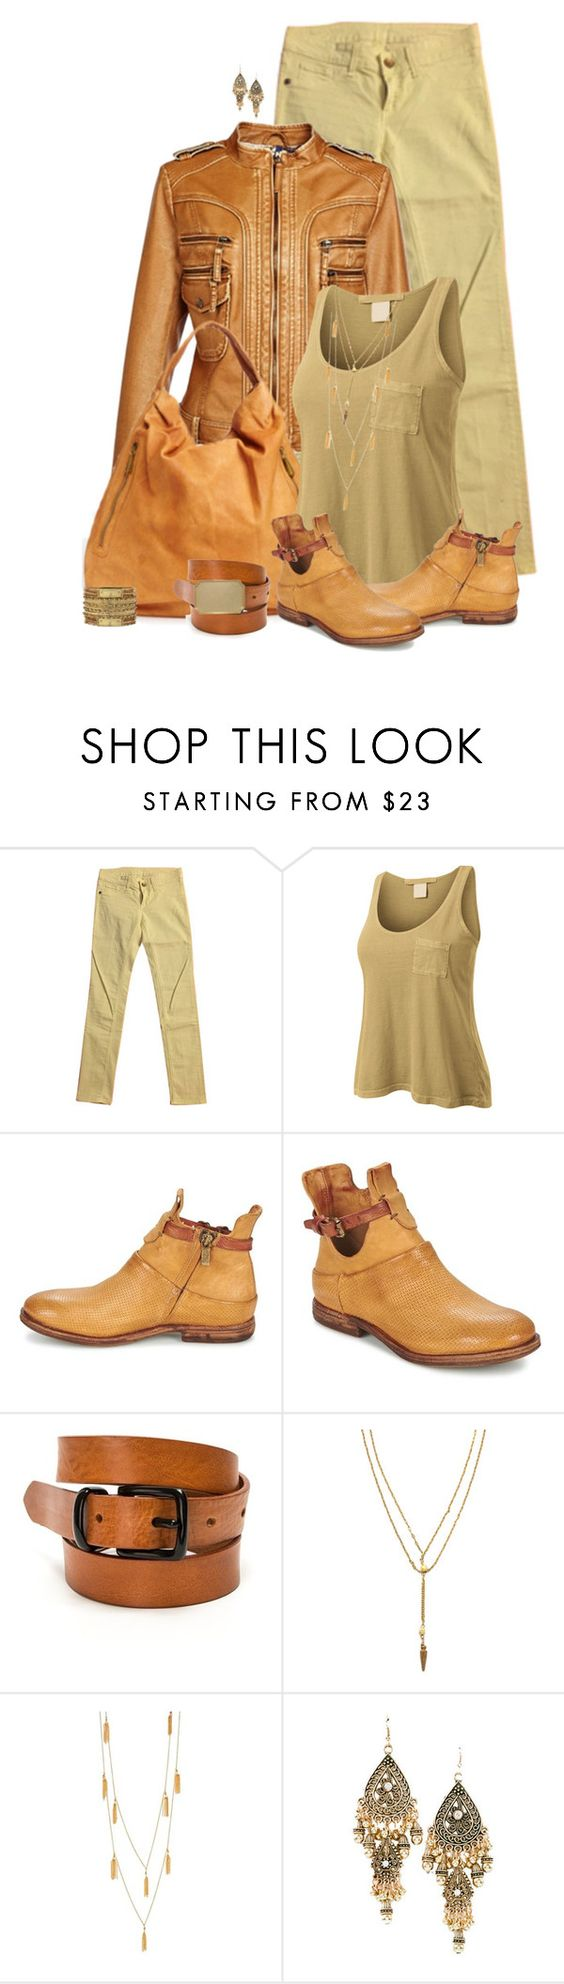 """set"" by vesper1977 ❤ liked on Polyvore featuring Rich & Royal, Charles Jourdan, LE3NO, A.S. 98, Vanessa Mooney, Gorjana, women's clothing, women, female and woman"